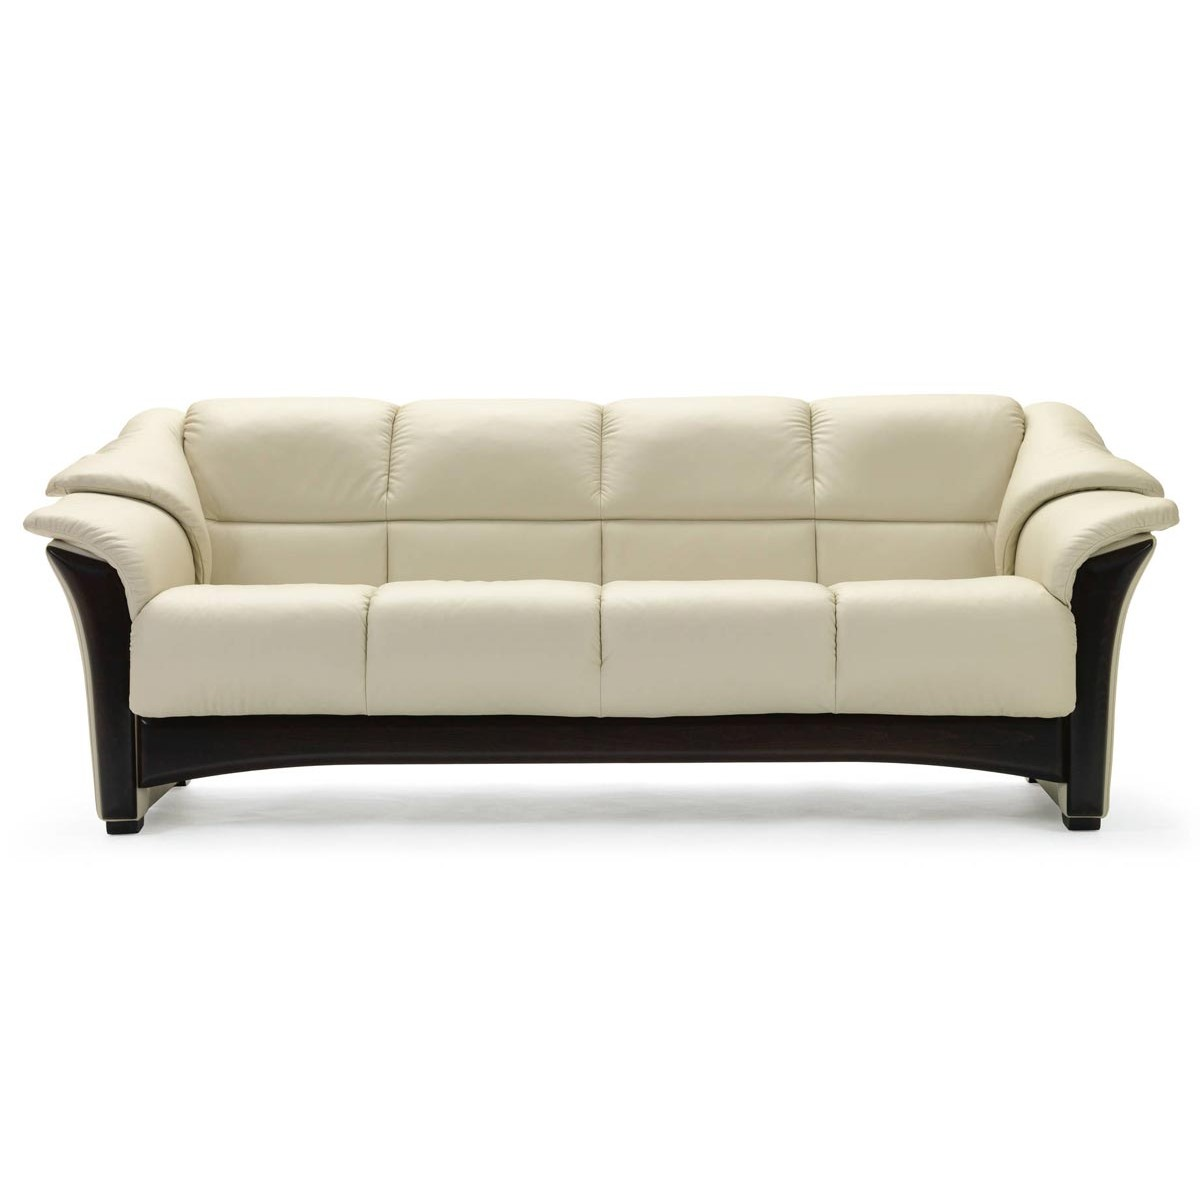 Sofa Fra Ekornes Ekornes Oslo Sofa Wood Trim From 2 695 00 By Stressless